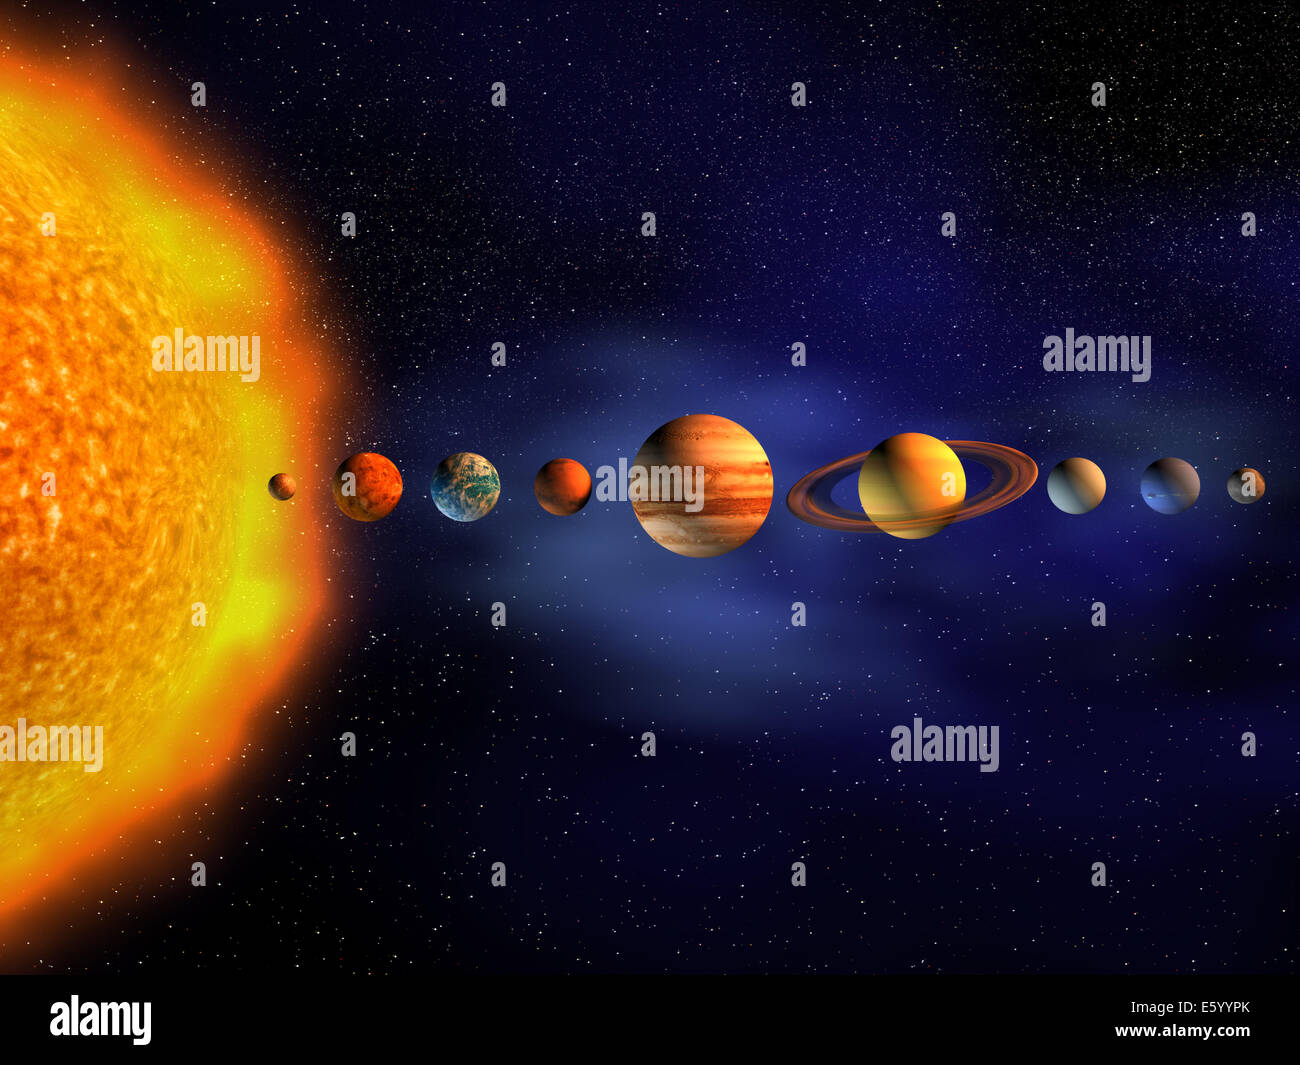 diagramm der planeten im sonnensystem 3d render stockfoto bild 72529259 alamy. Black Bedroom Furniture Sets. Home Design Ideas